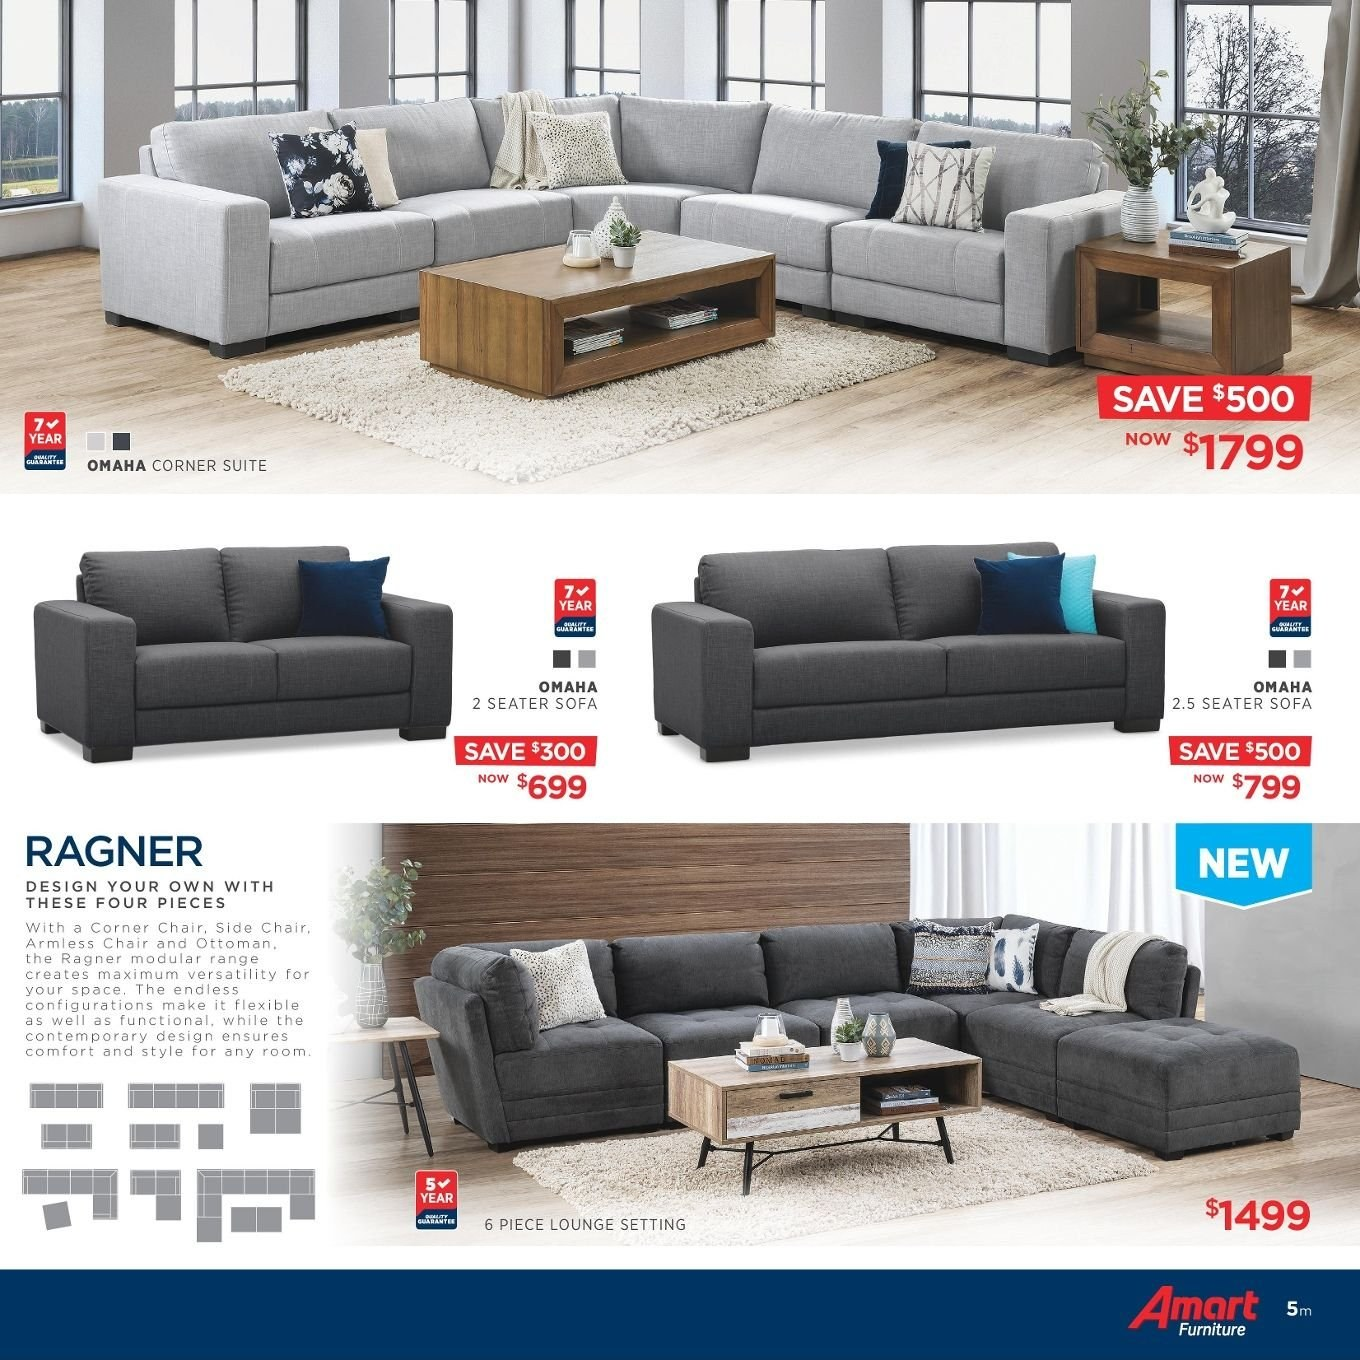 Amart Furniture catalogue  - 27.8.2018 - 26.9.2018. Page 5.